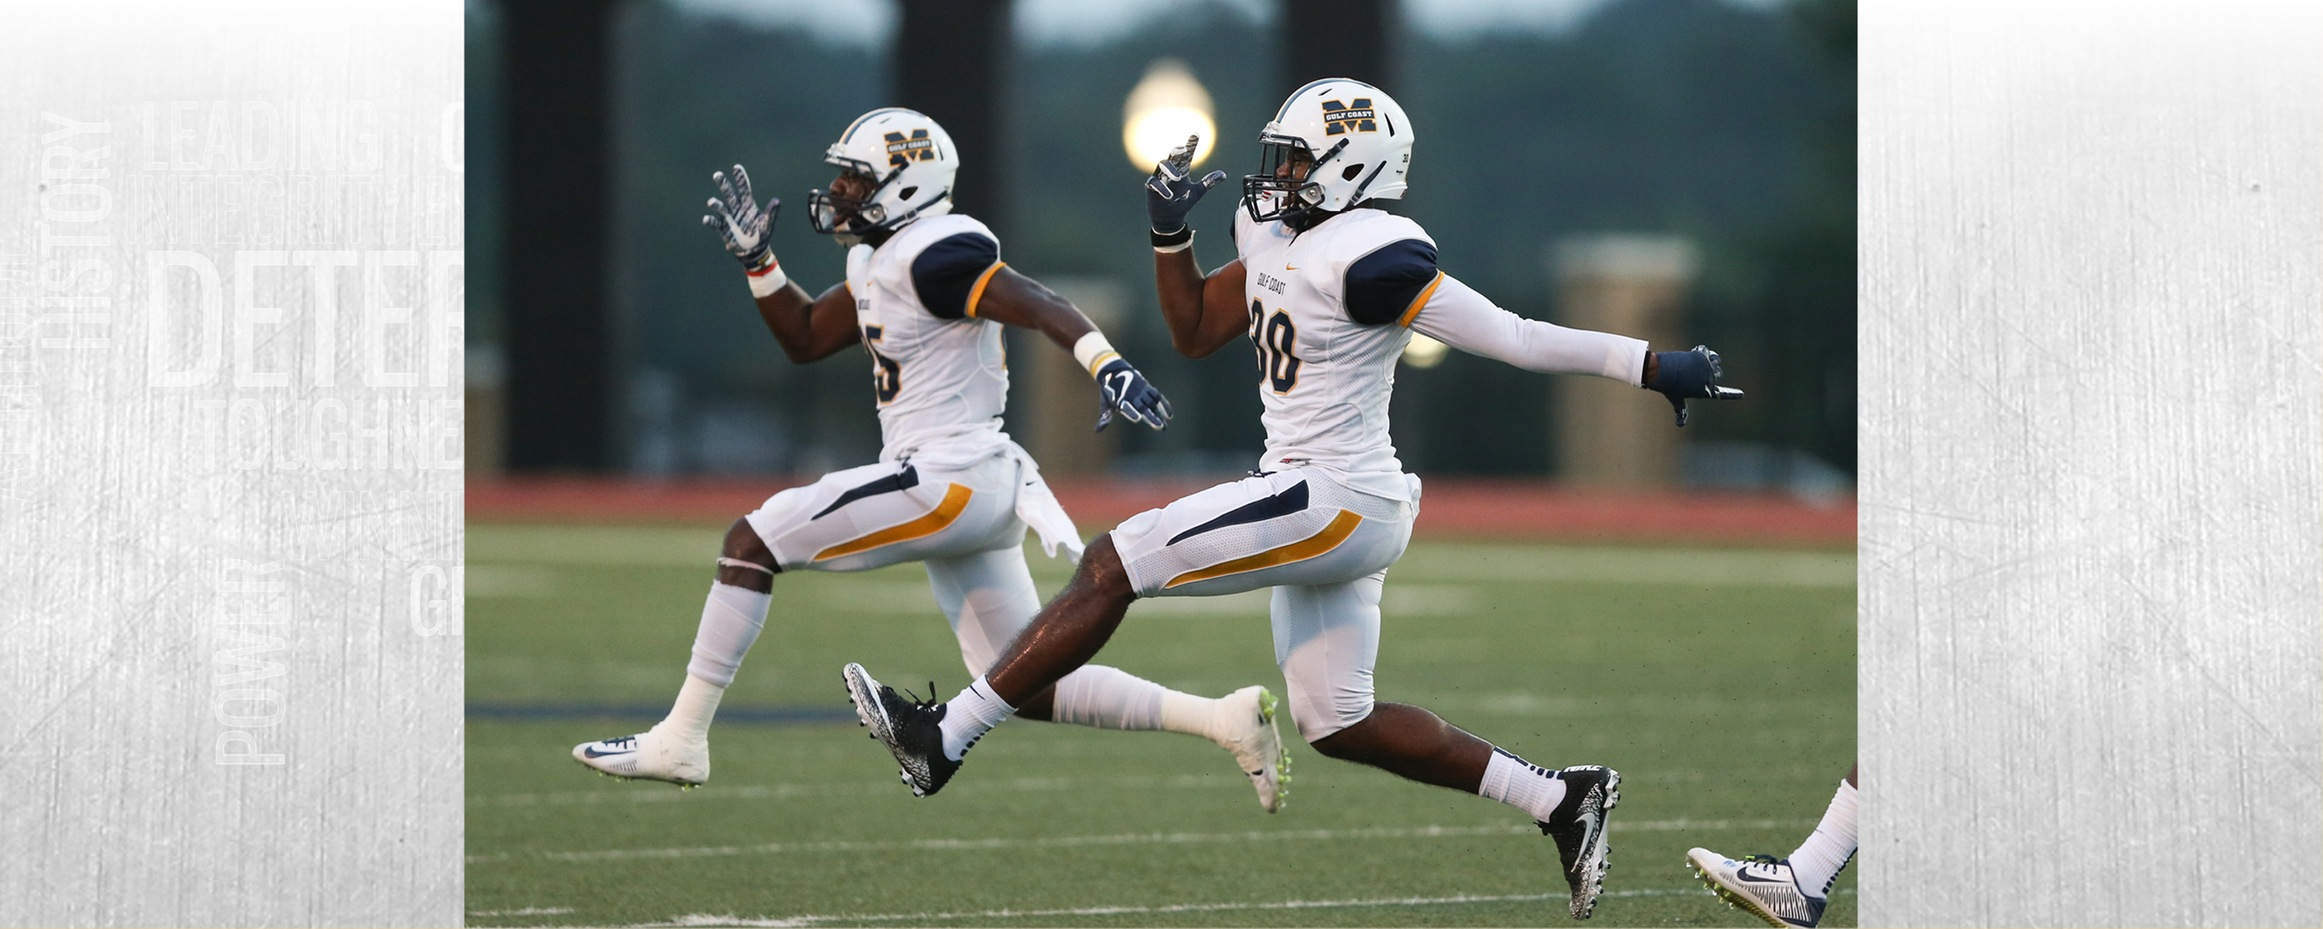 Gulf Coast looks to finish at EMCC